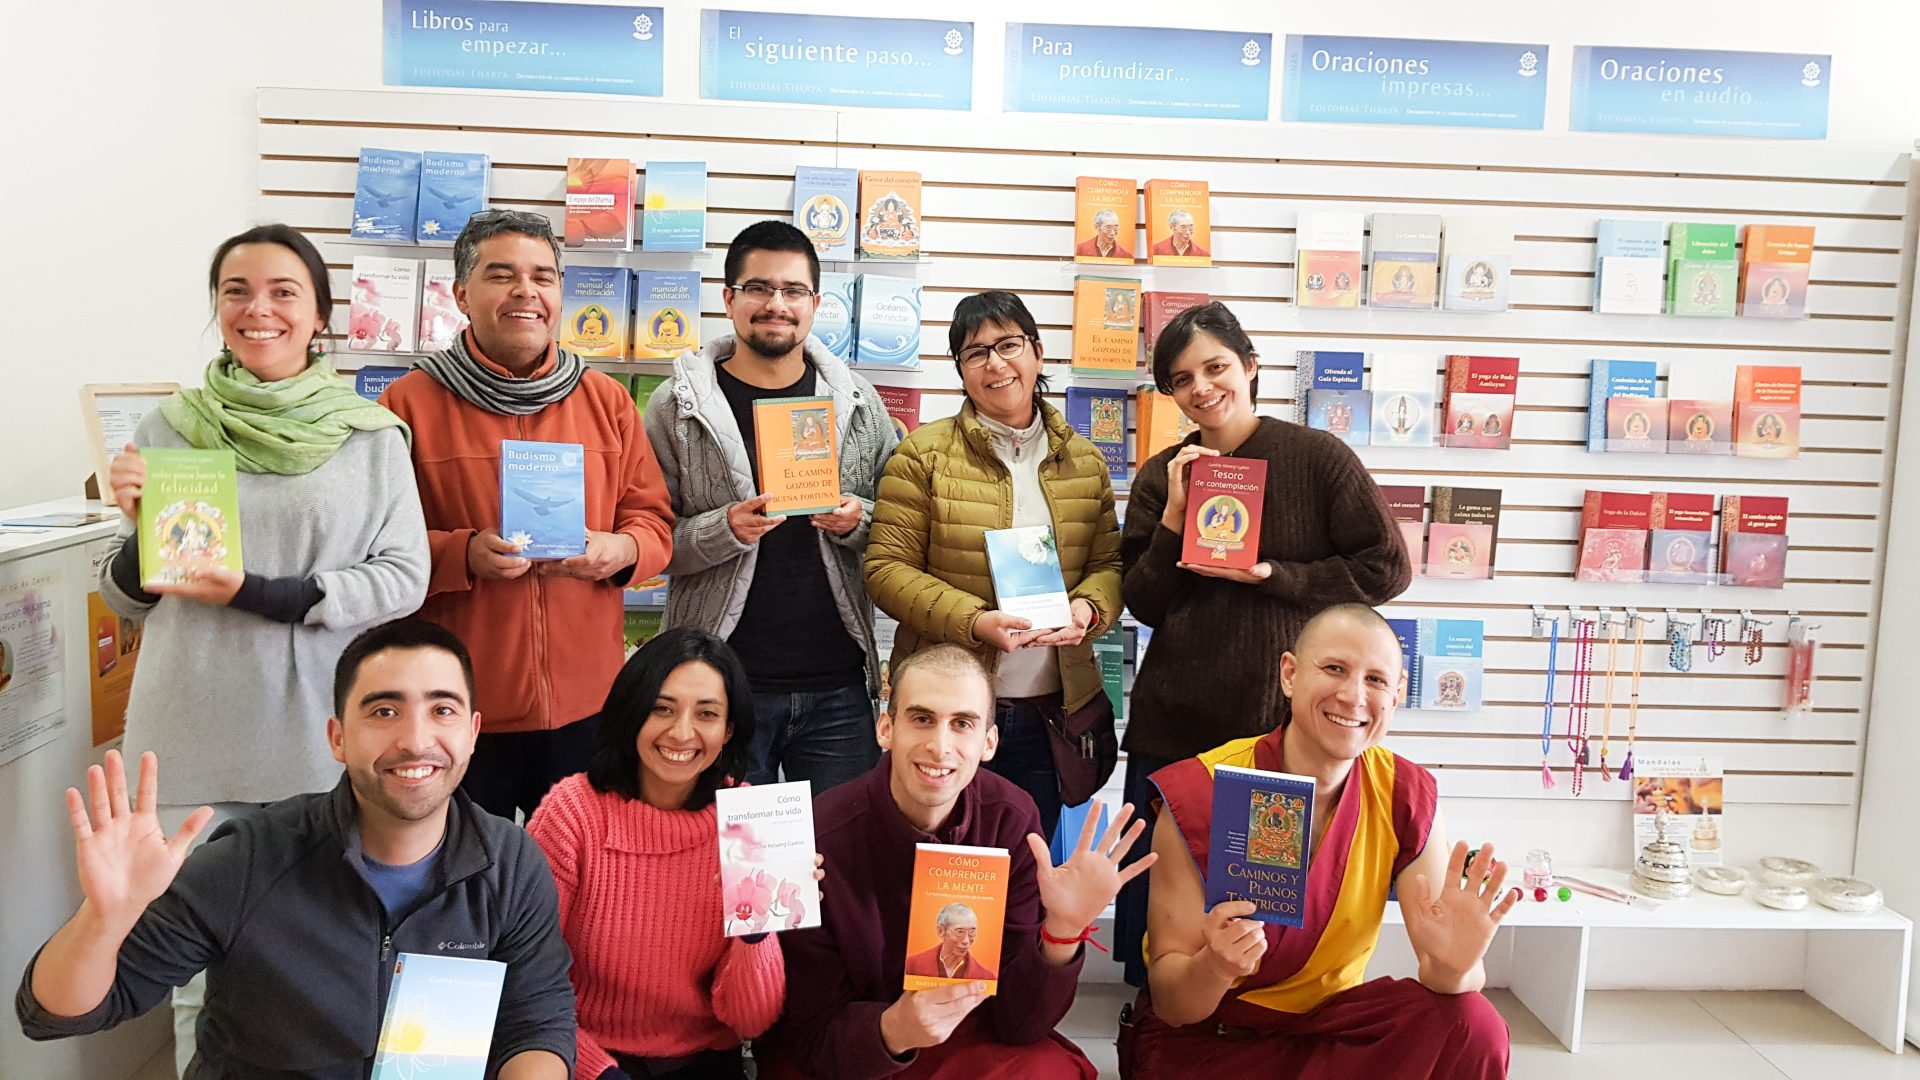 18CMK Chile - 1 Group of teachers at KMC Chile with books of tharpa-Thaipa Chile